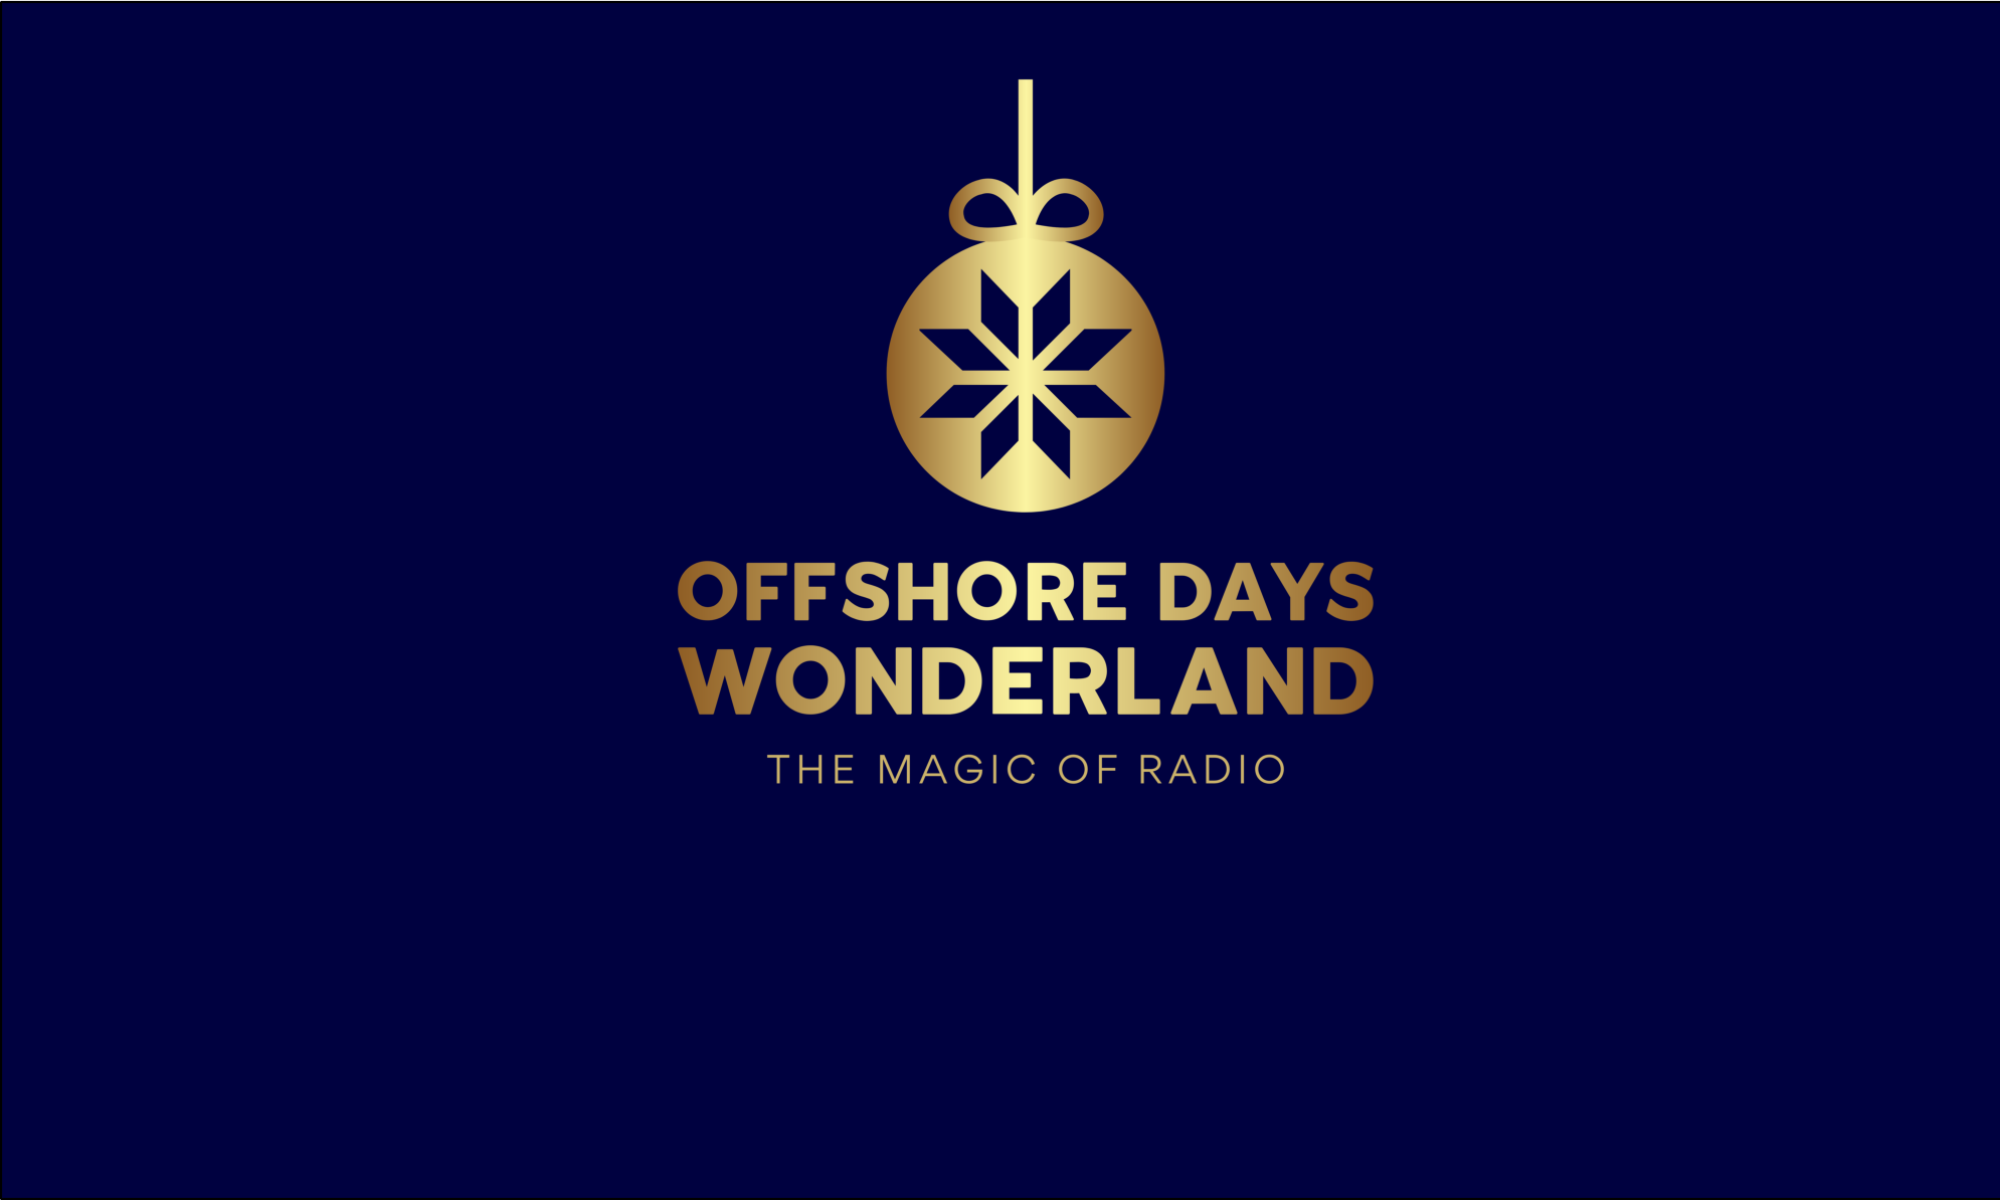 Offshore Days Wonderland